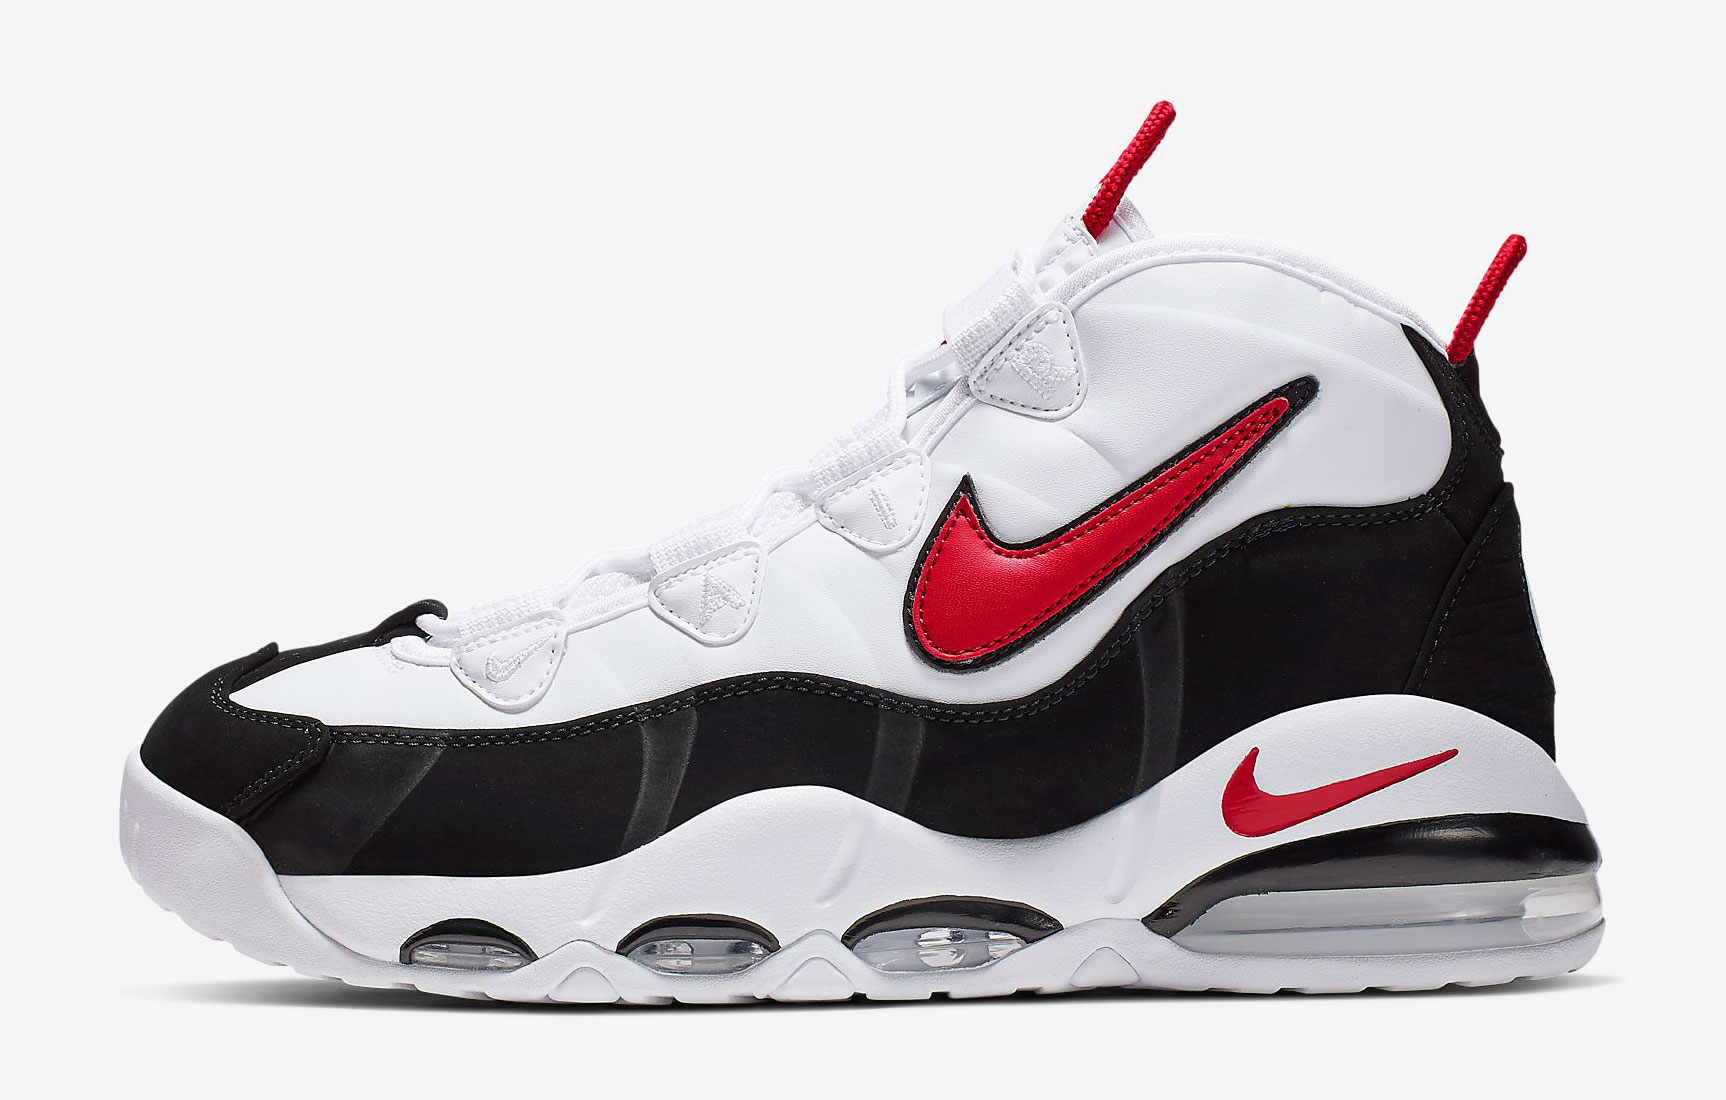 nike-air-max-uptempo-95-chicago-white-red-black-release-date